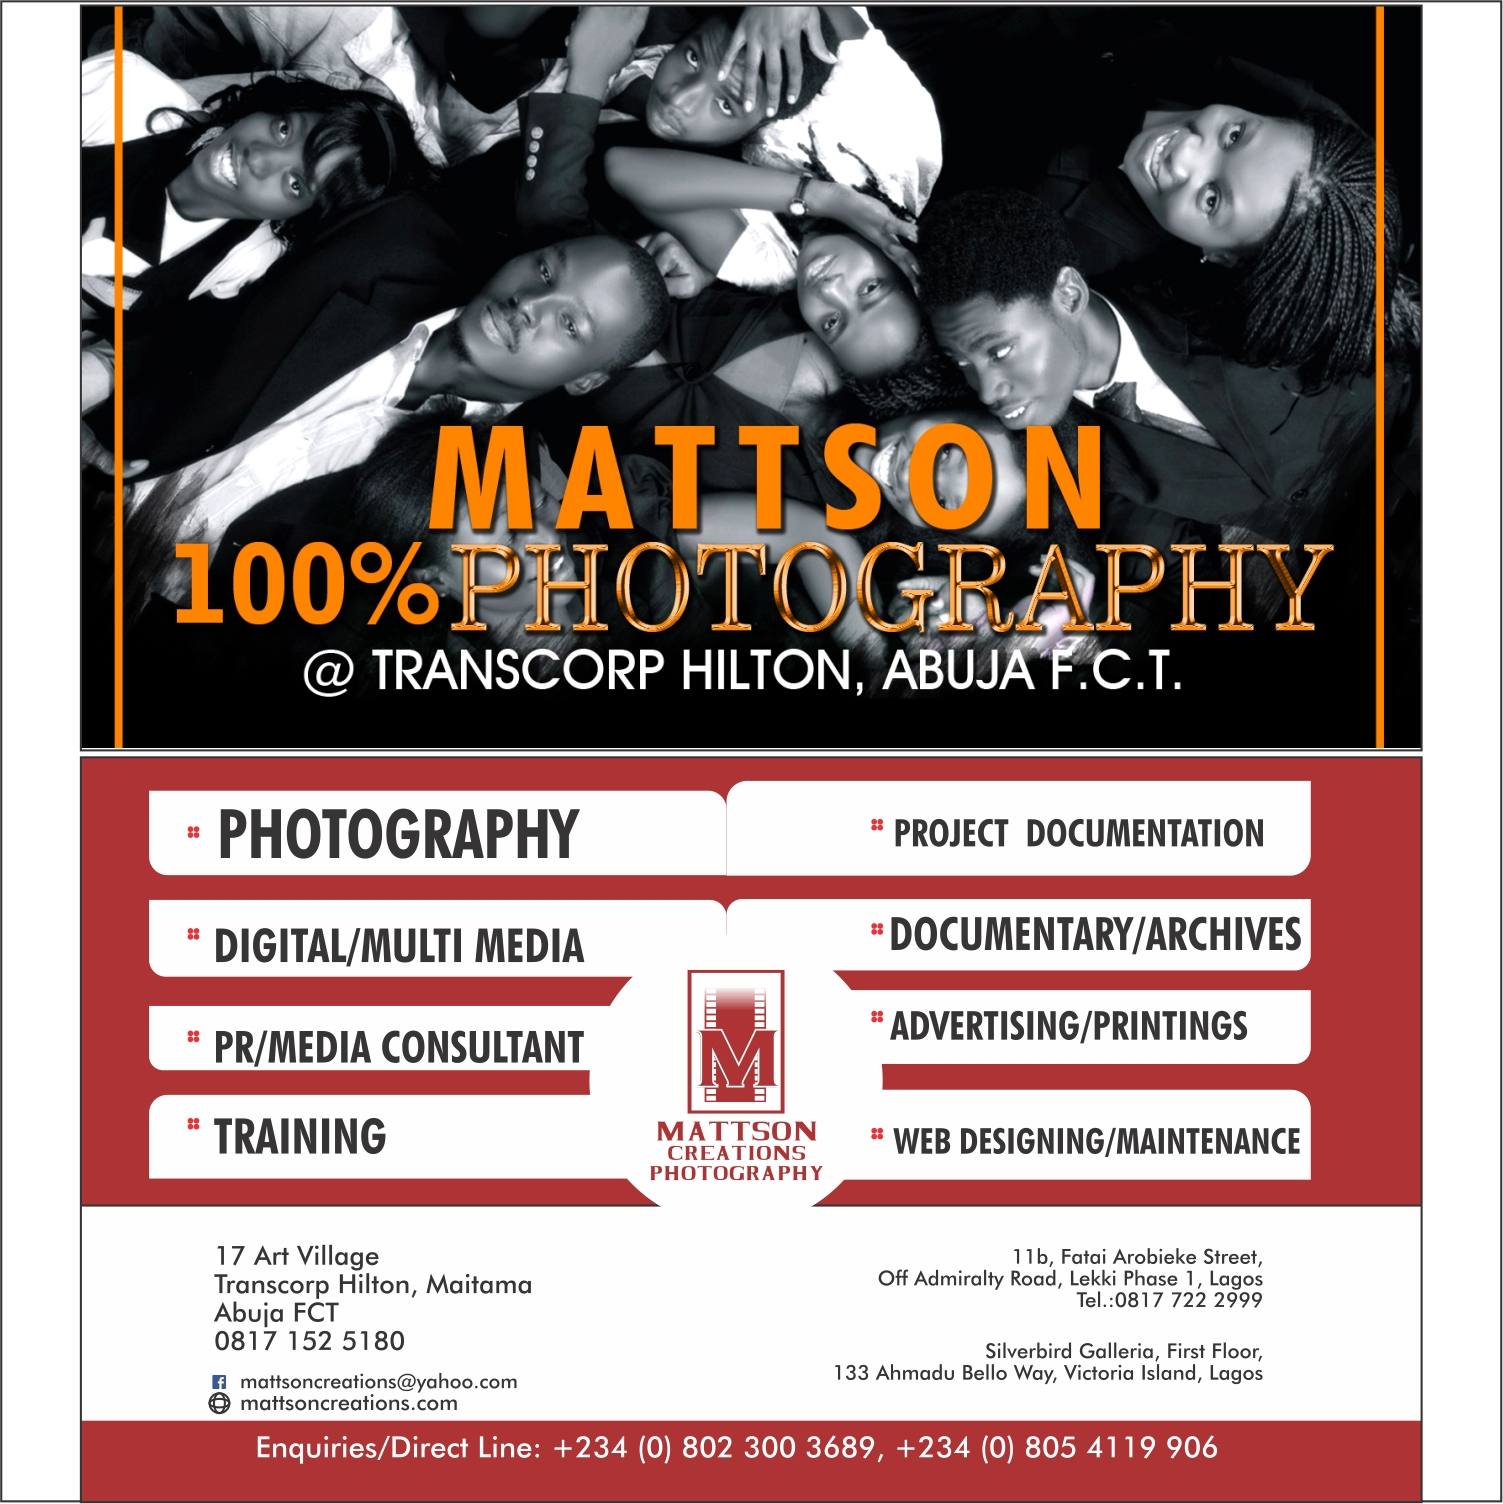 MATTSON CREATION PHOTOGRAPHY